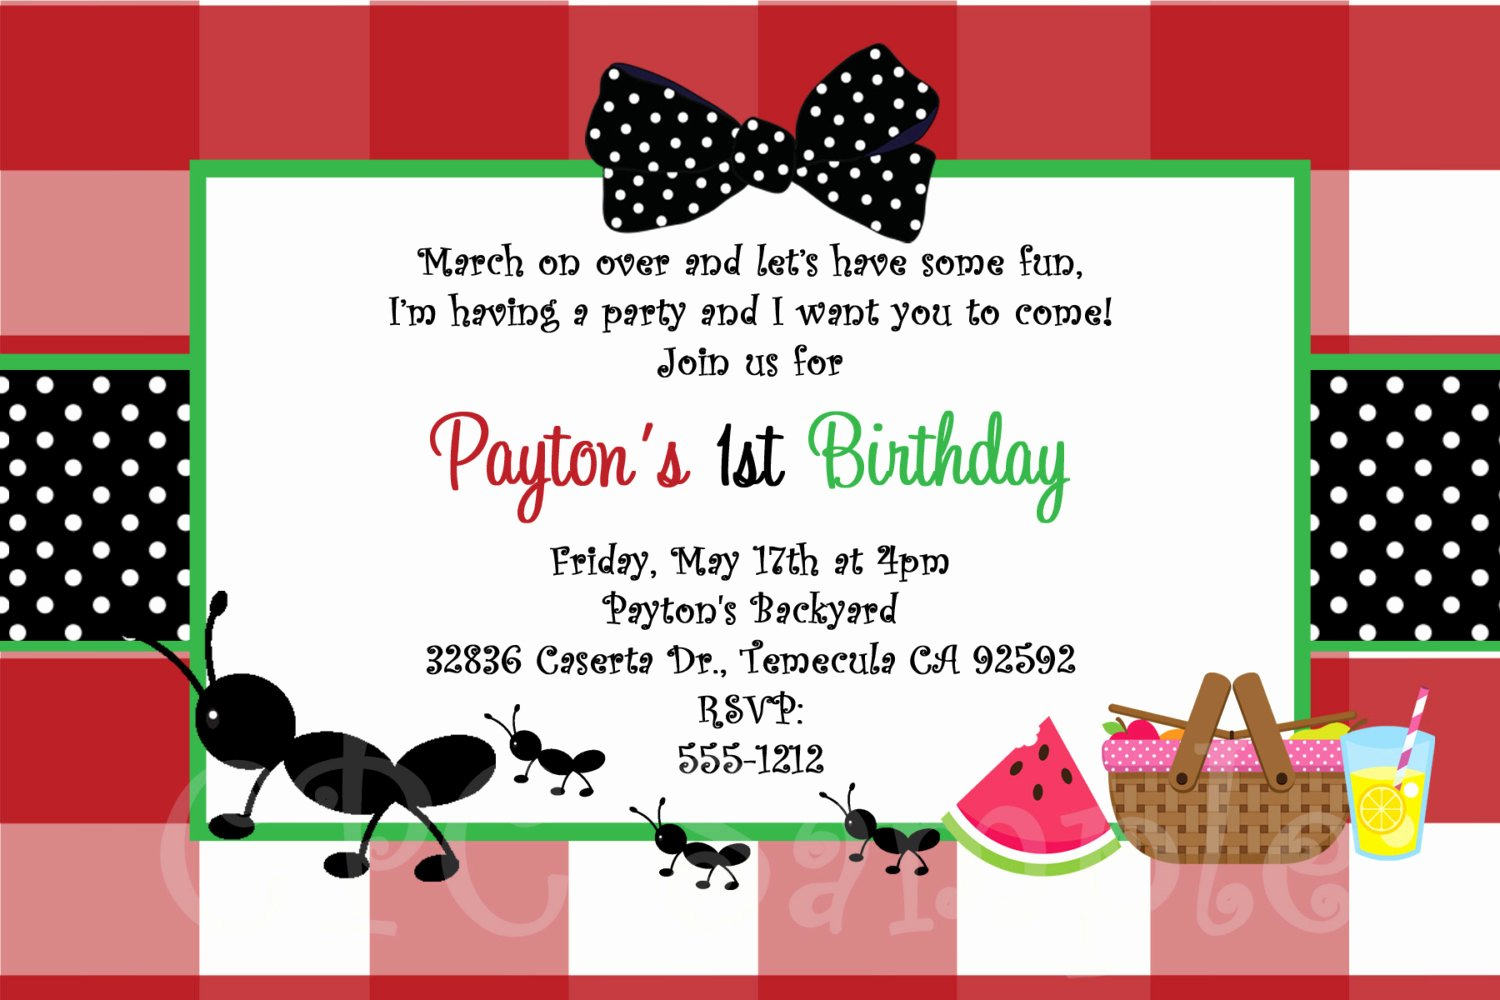 Picnic Birthday Party Invitations Awesome Ants On A Picnic Birthday Invitation Printable or Printed